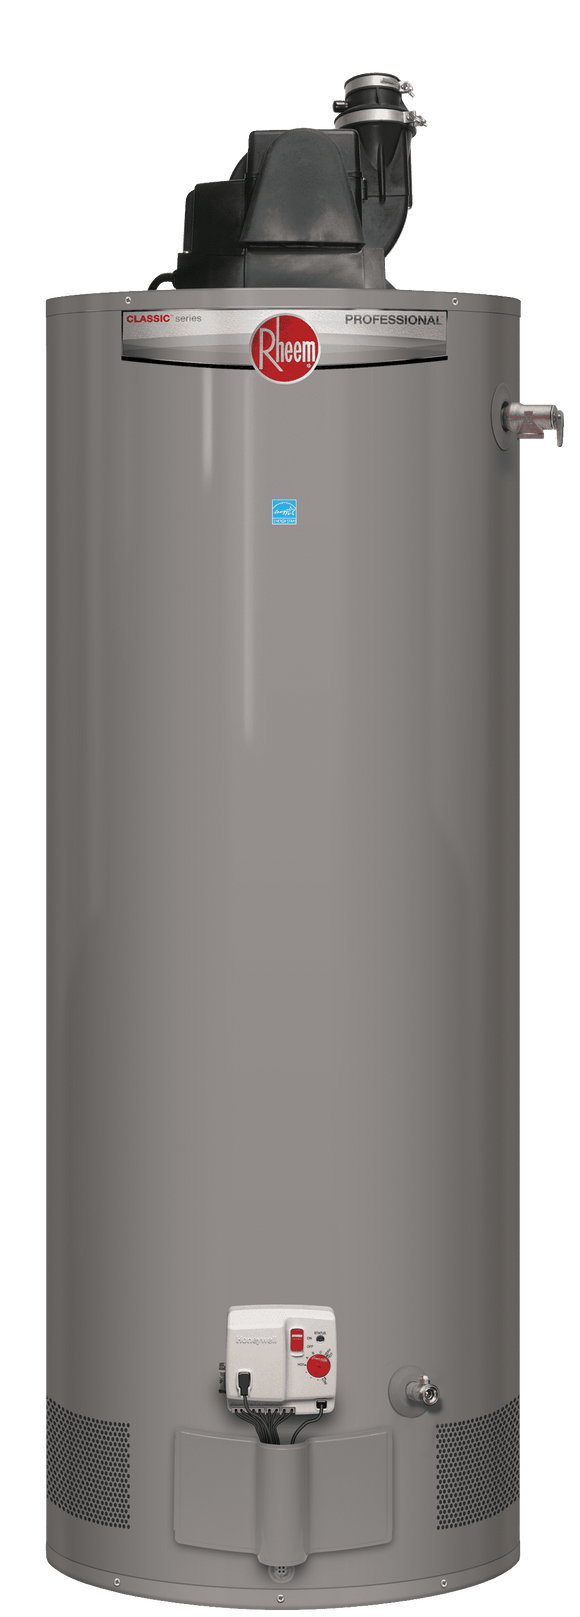 RHEEM PROG40S-36N RH67 PV Professional Classic 40 Gallon Short 36,000 BTU Natural Gas Residential Power Vent Water Heater